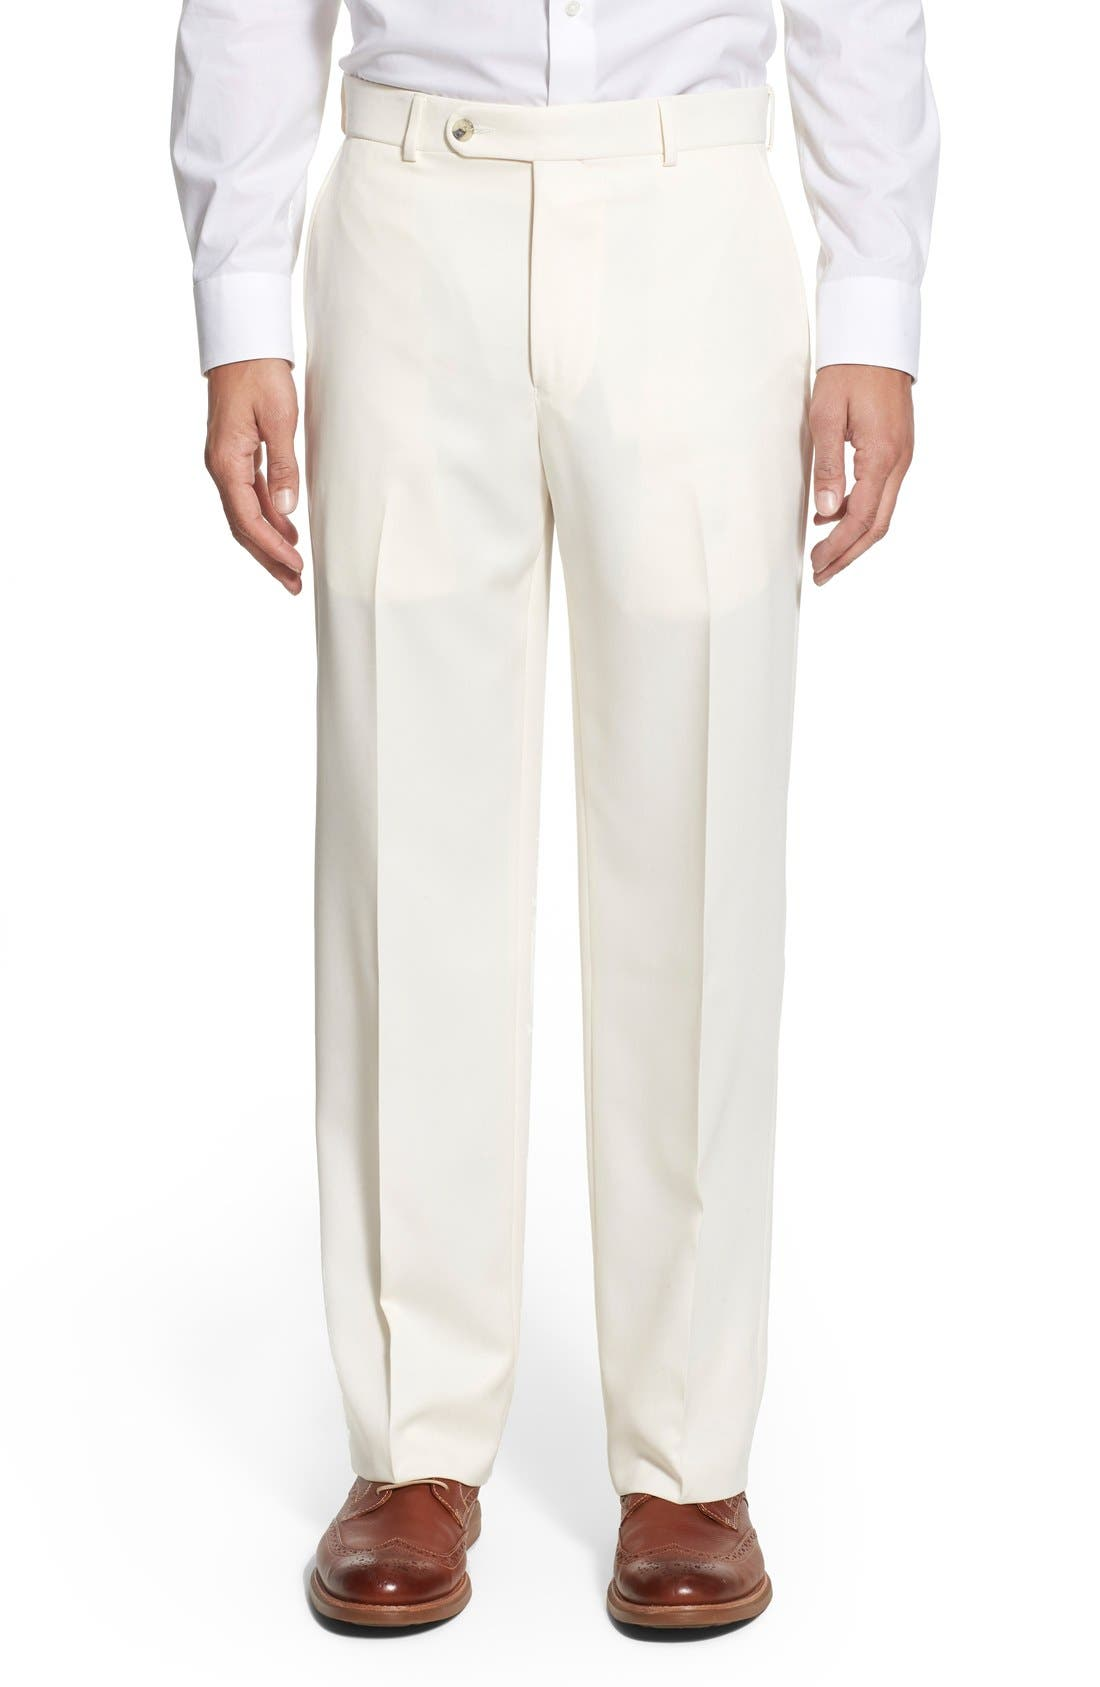 Mens White Dress Pants NdJbbI5H